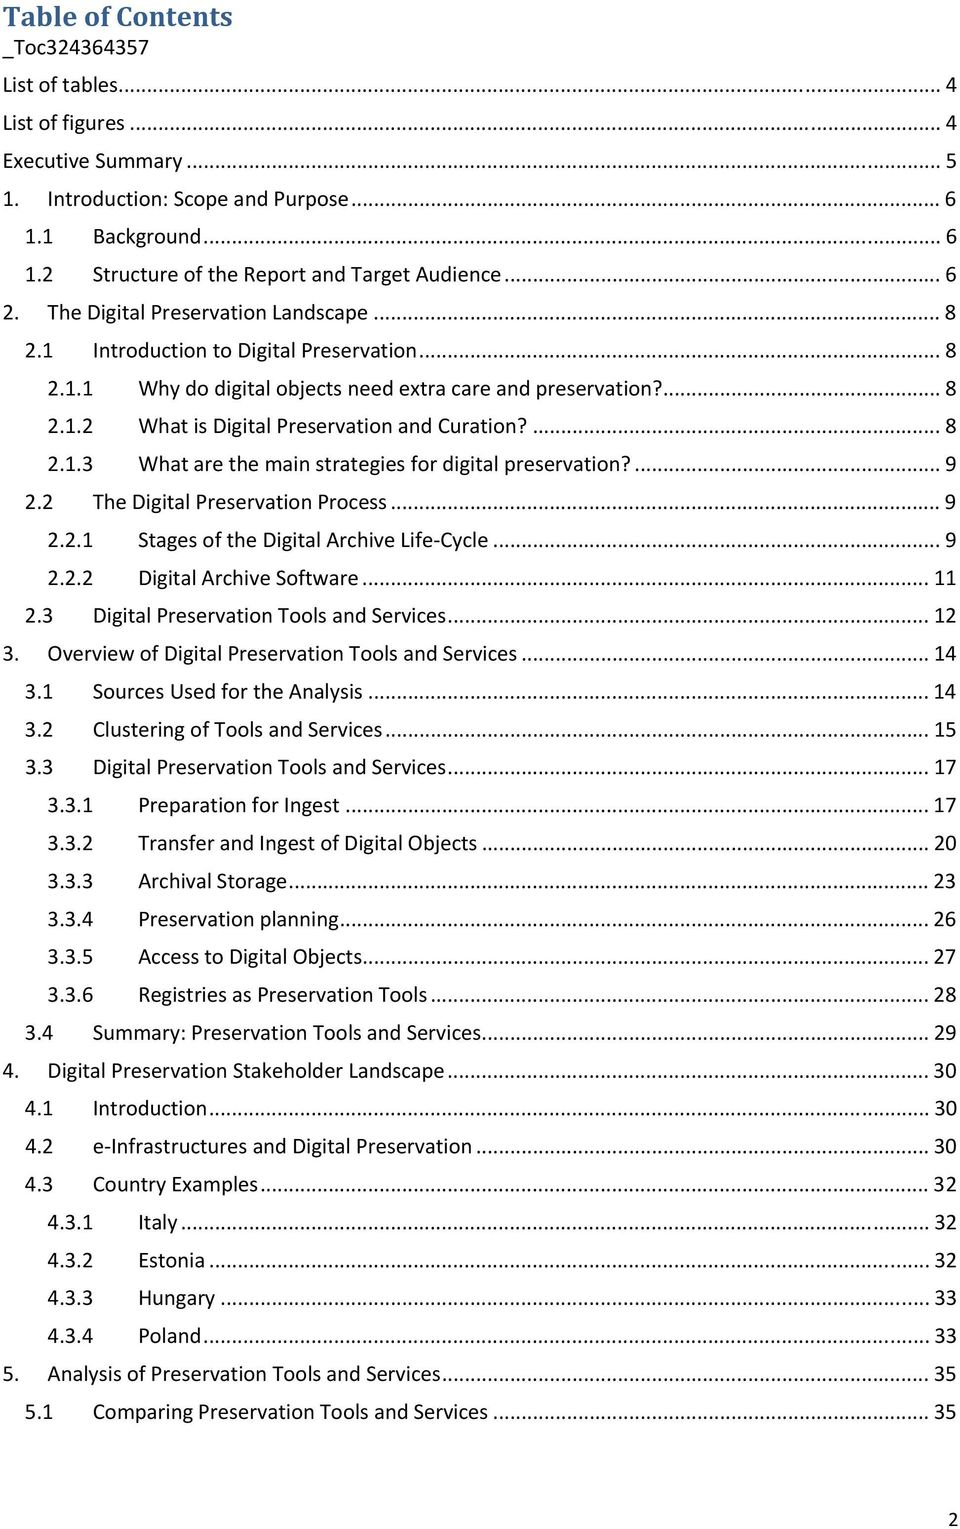 ... 8 2.1.3 What are the main strategies for digital preservation?... 9 2.2 The Digital Preservation Process... 9 2.2.1 Stages of the Digital Archive Life Cycle... 9 2.2.2 Digital Archive Software.